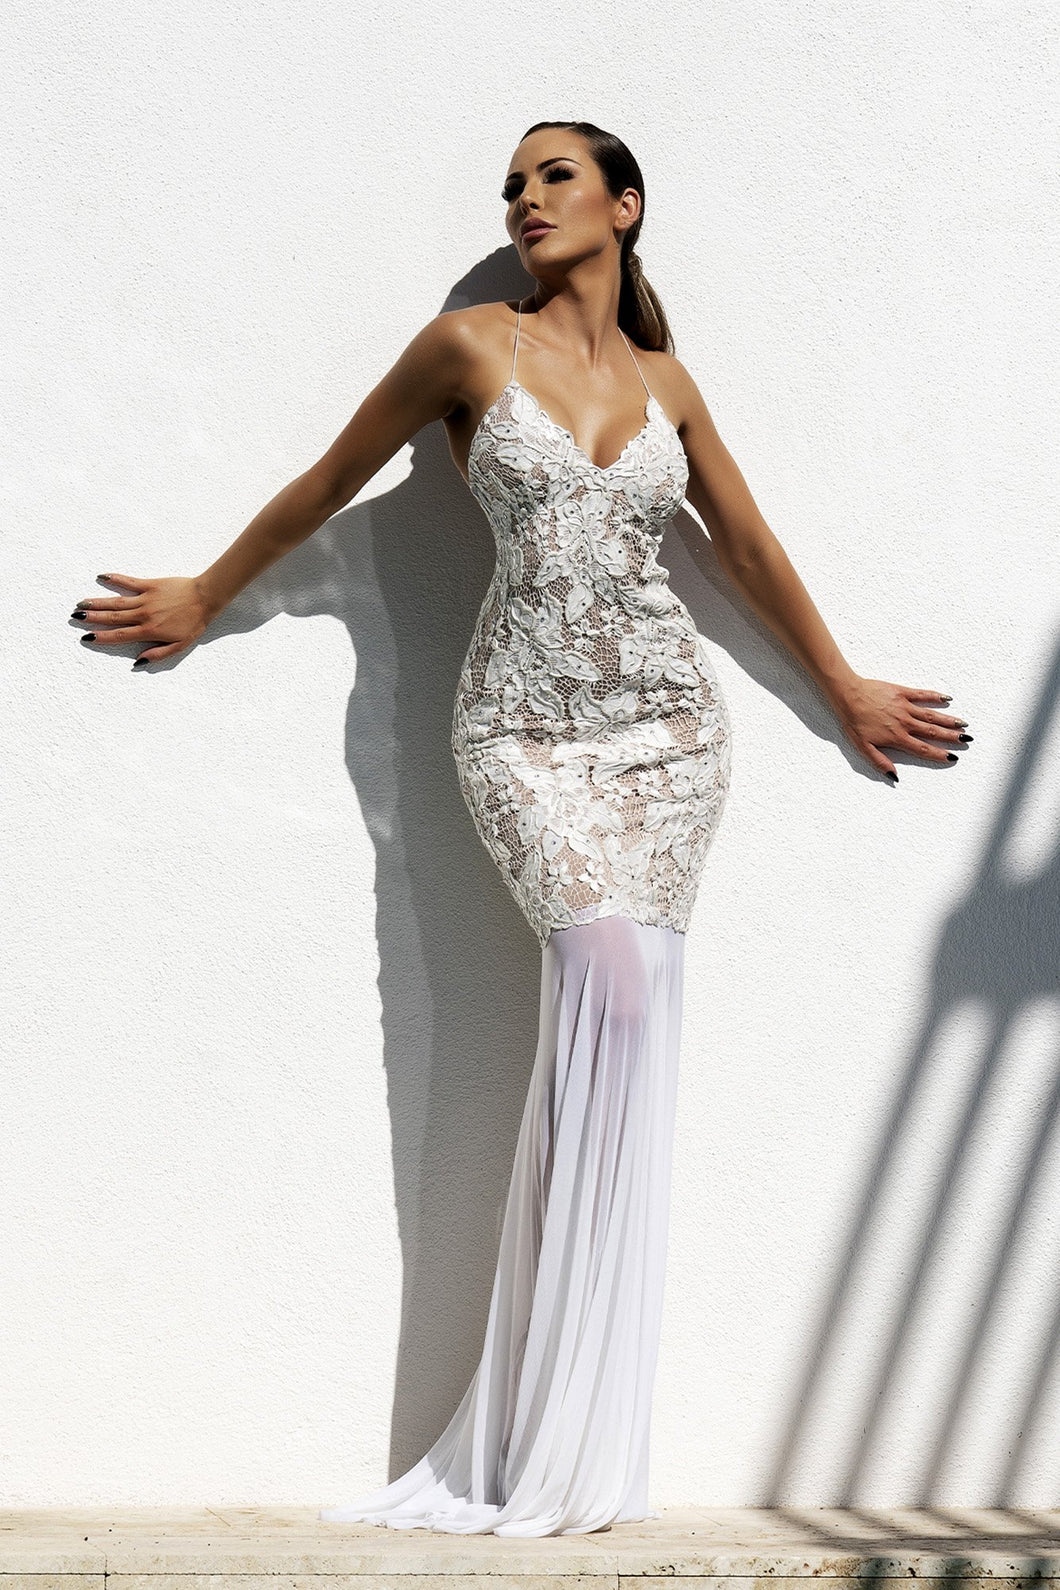 Maluz White Handpainted Long Dress - Miami Gowns Design - BACCIO Couture